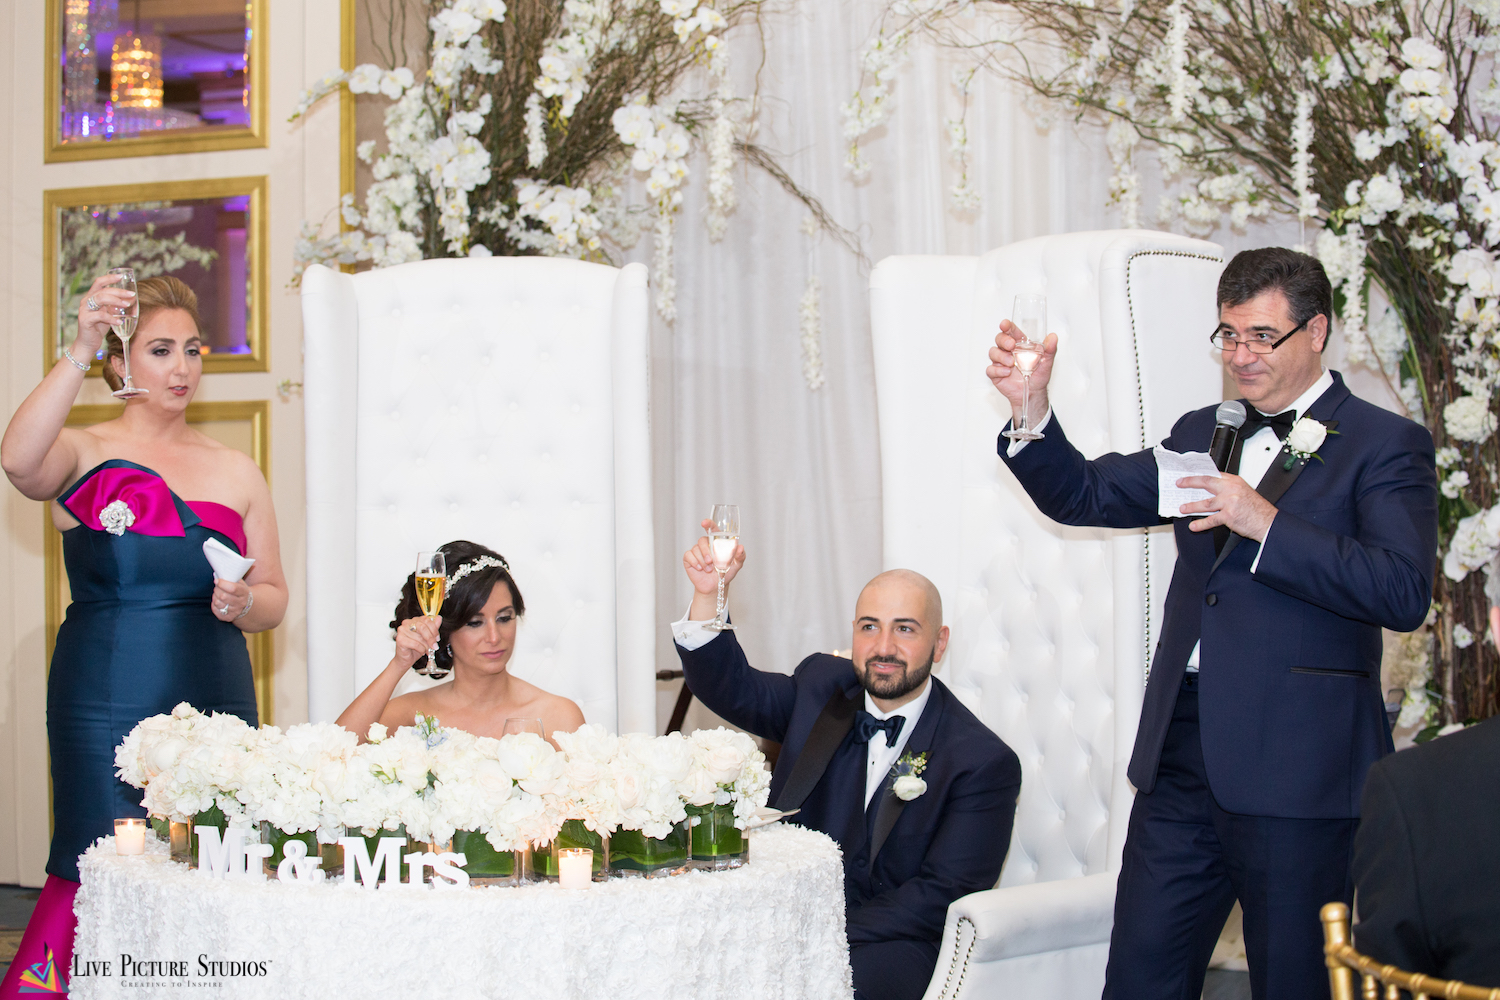 NJ Wedding Videographers Share Their Top 3 Speech Tips